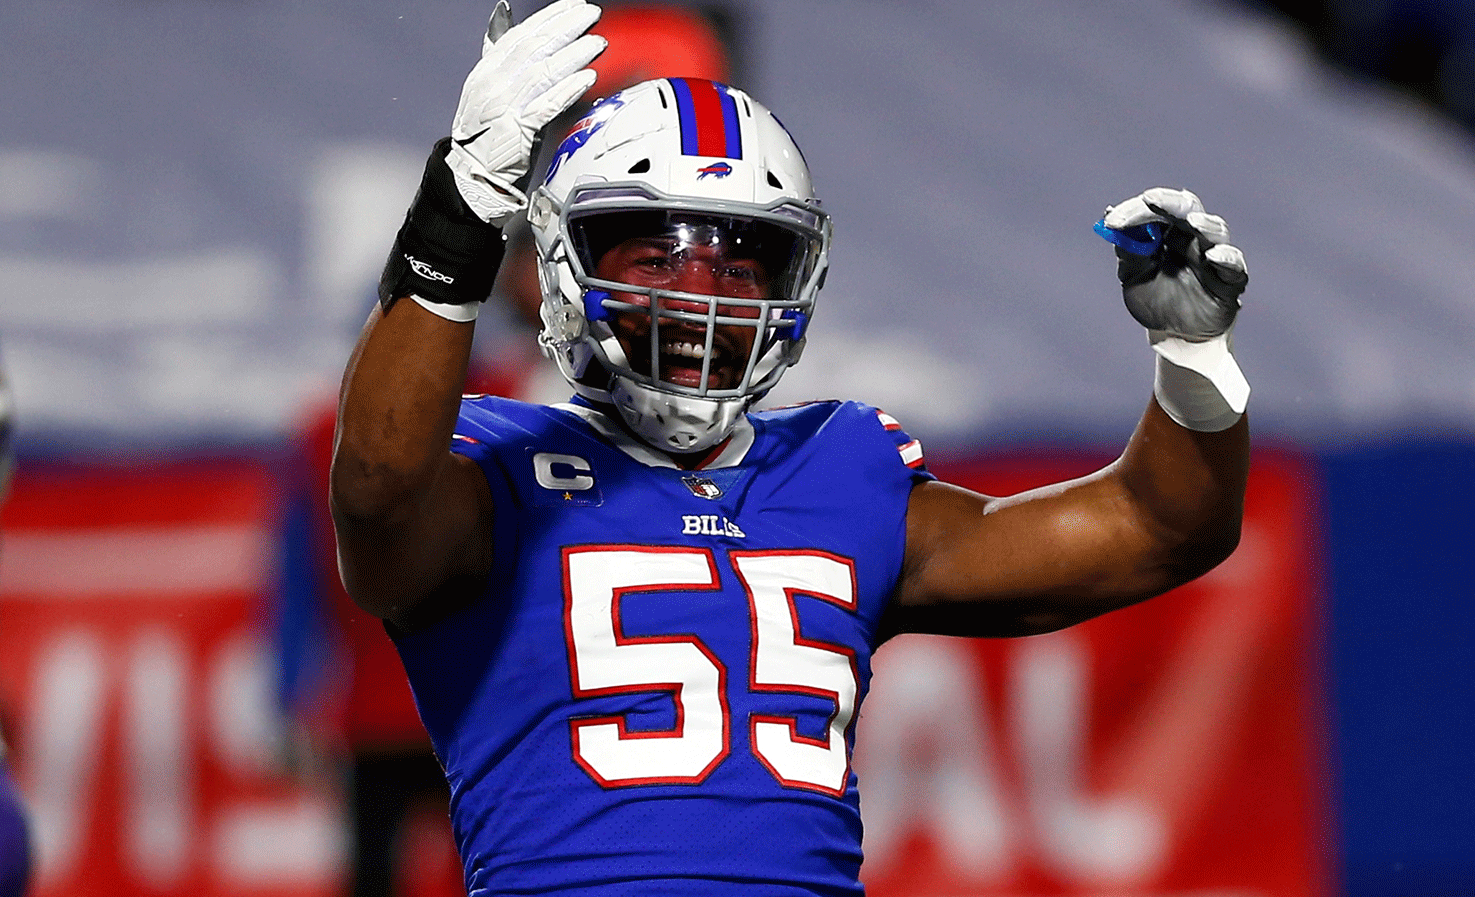 NFL: Bills domina a Cuervos y consigue boleto a Final de Conferencia